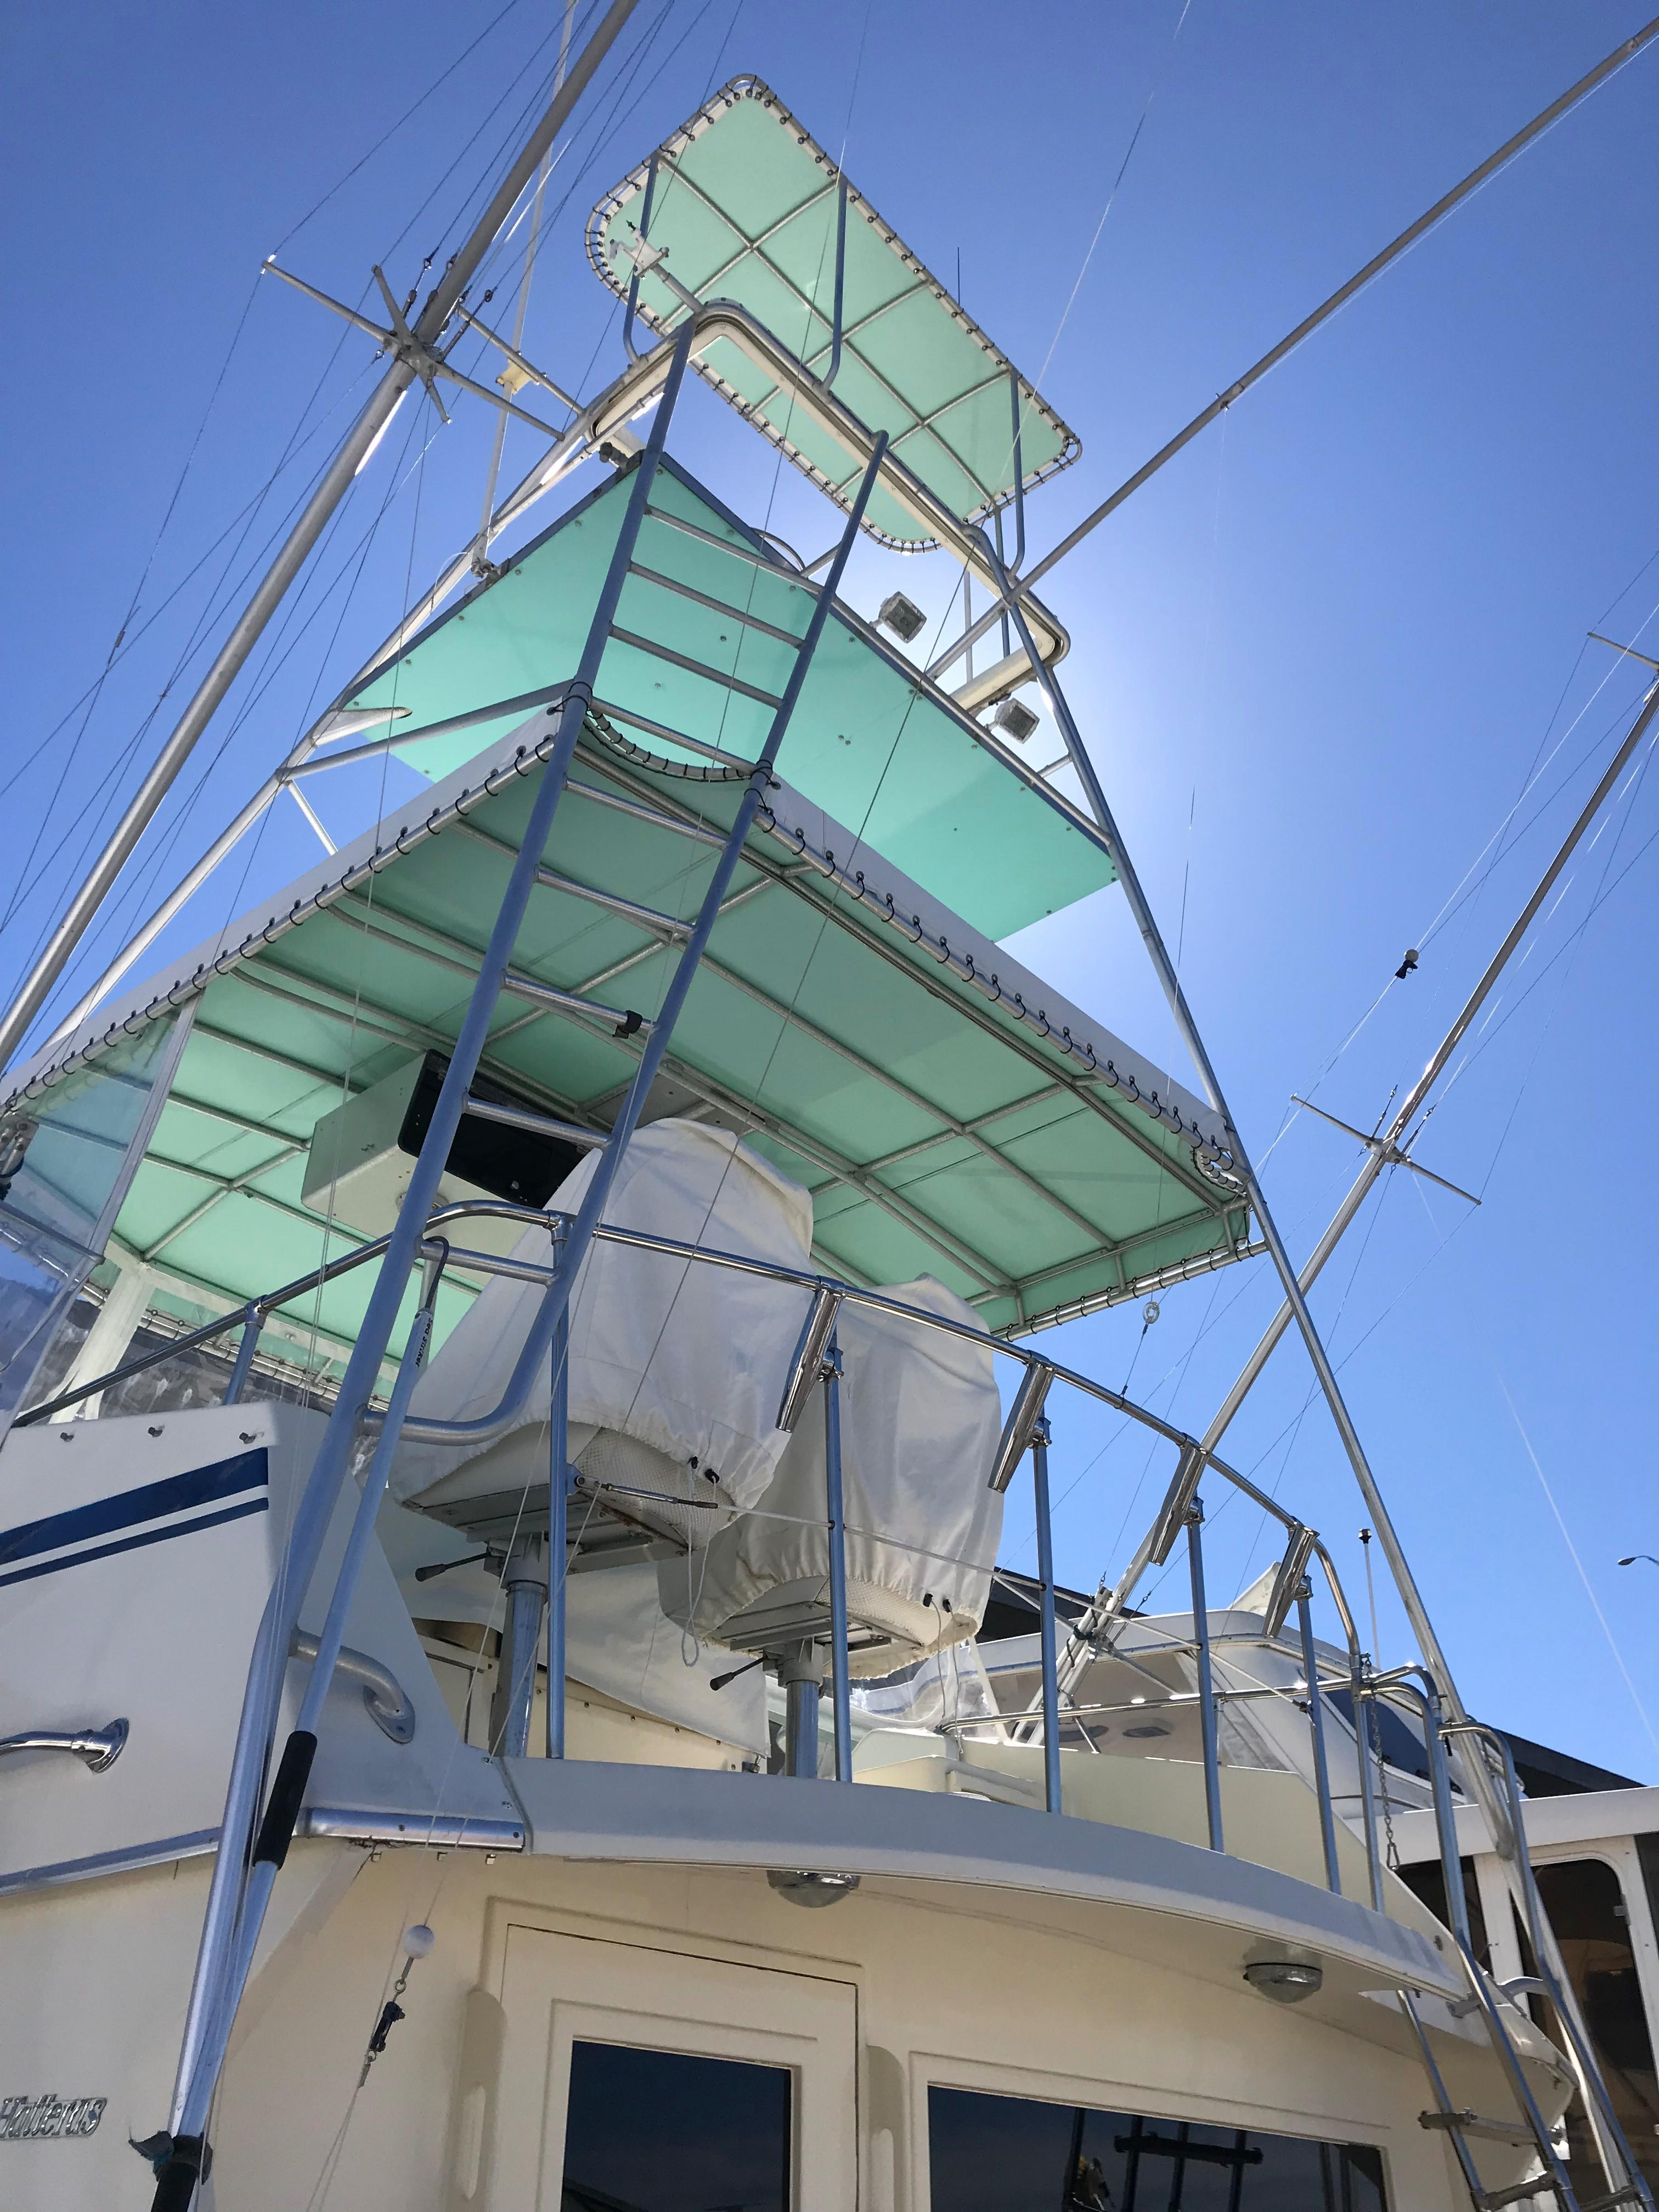 Hatteras Convertible - MUST SEE - Flybridge and Tower